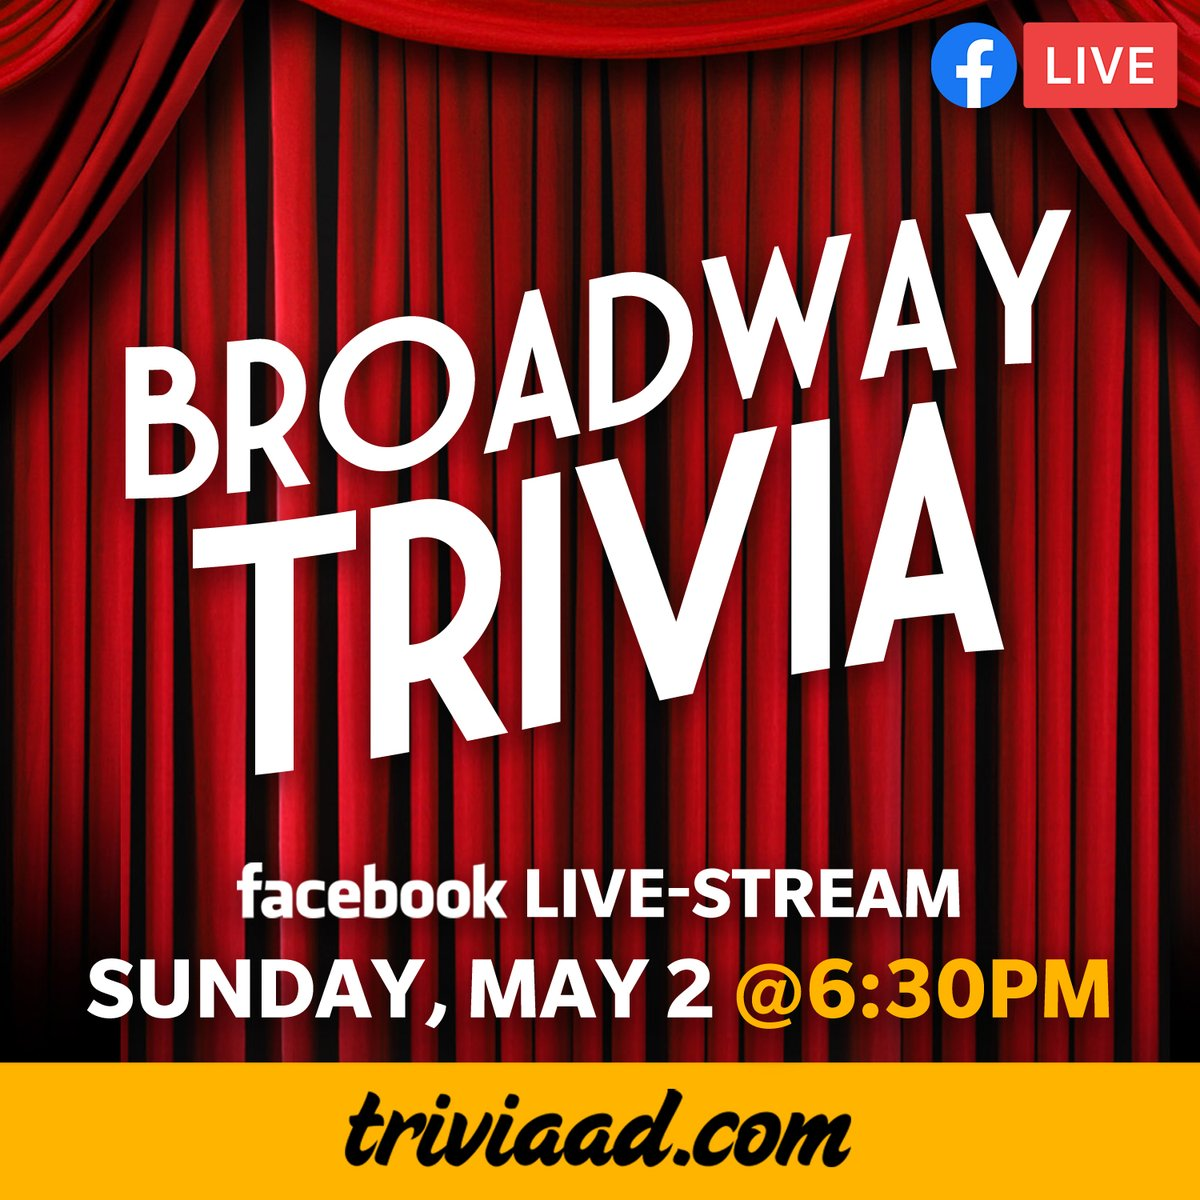 #Broadway #Trivia via Facebook Live-Stream on Sunday, May 2 at 6:30pm EST. RSVP to the Facebook event at;  #Hamilton #Wicked #Rent #Wicked #LesMiserables